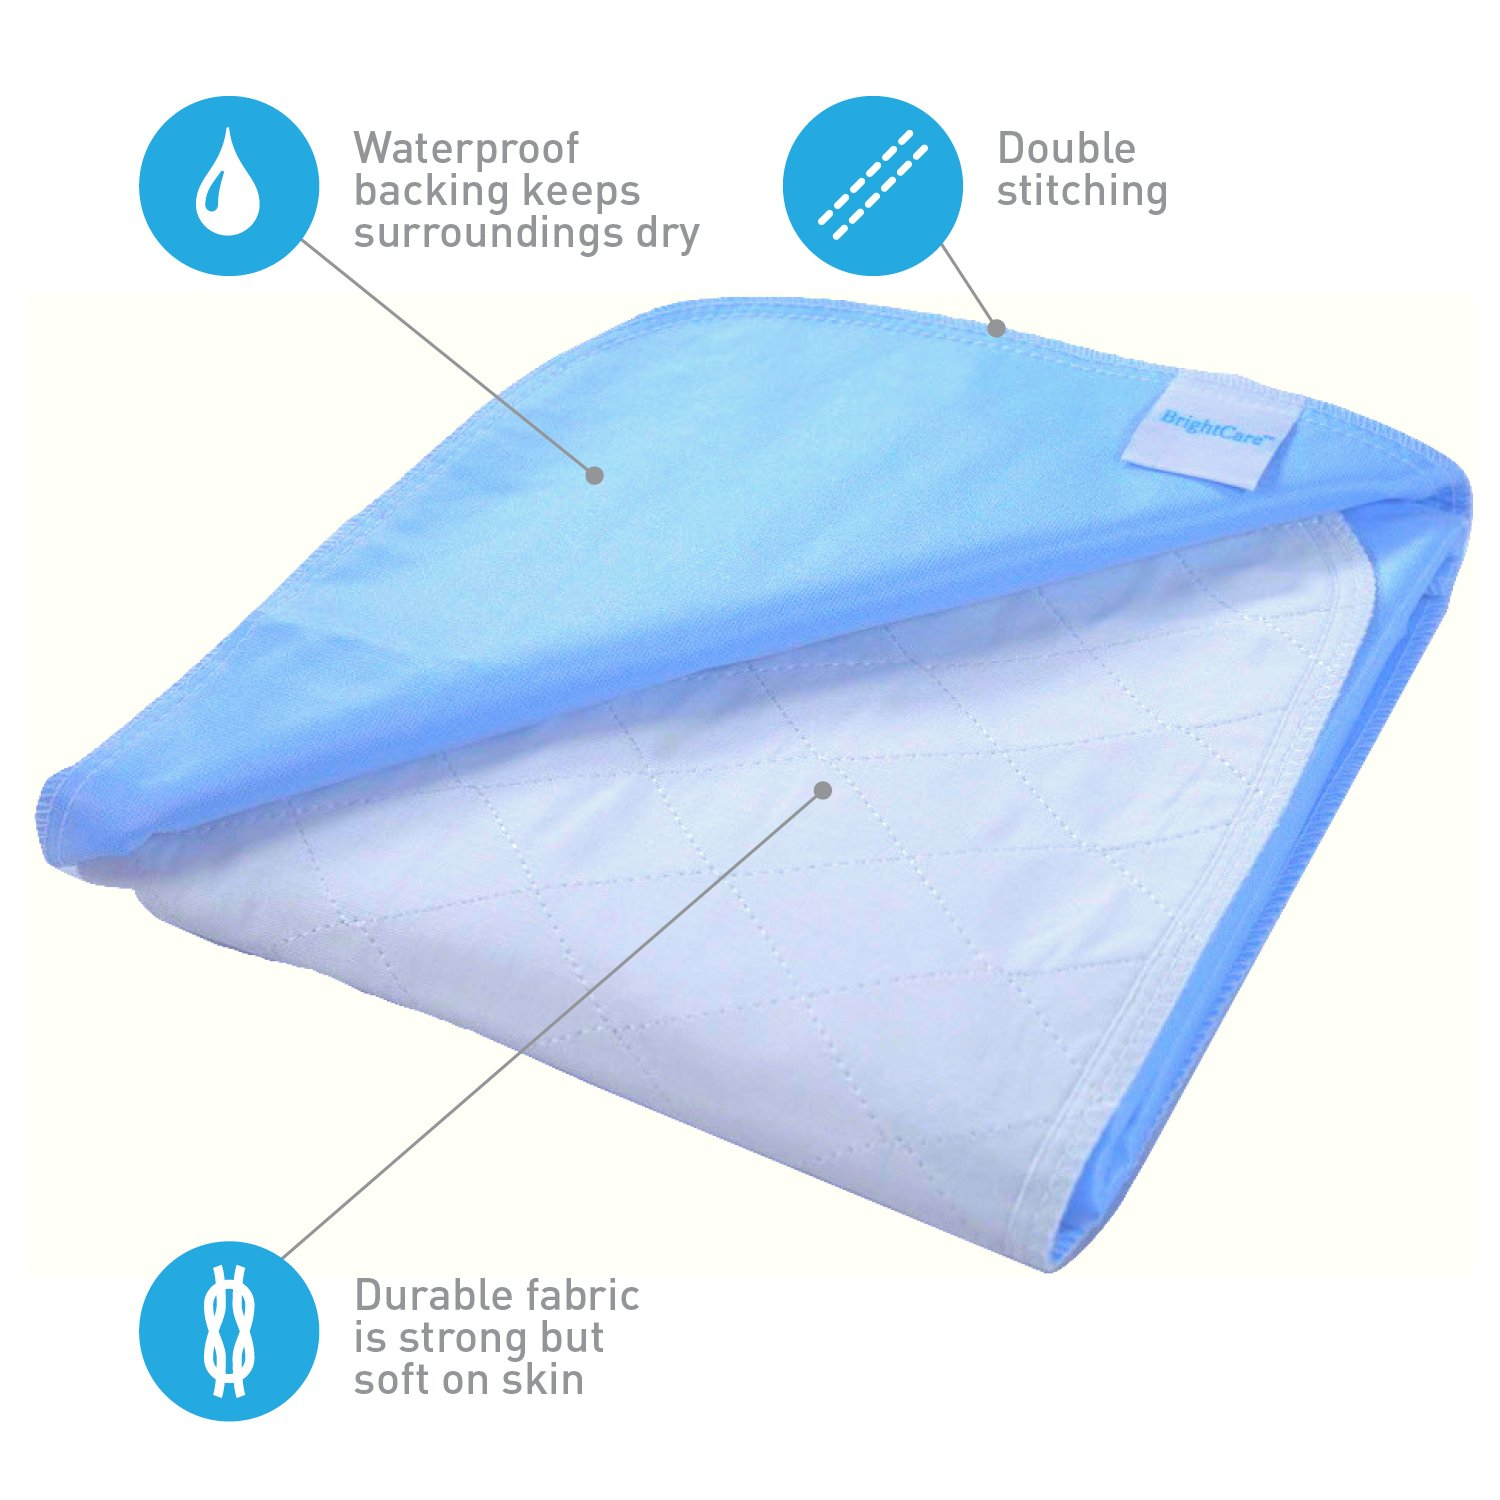 Saddle Style Absorbent Bed Pad with Tuck in sides (34Wx52L) - Waterproof and Washable 300x for Incontinence Tuckable Underpad Protection (Full and Queen) - Best for Baby, Child, Adult - Sequoia Health by Sequoia Health (Image #4)